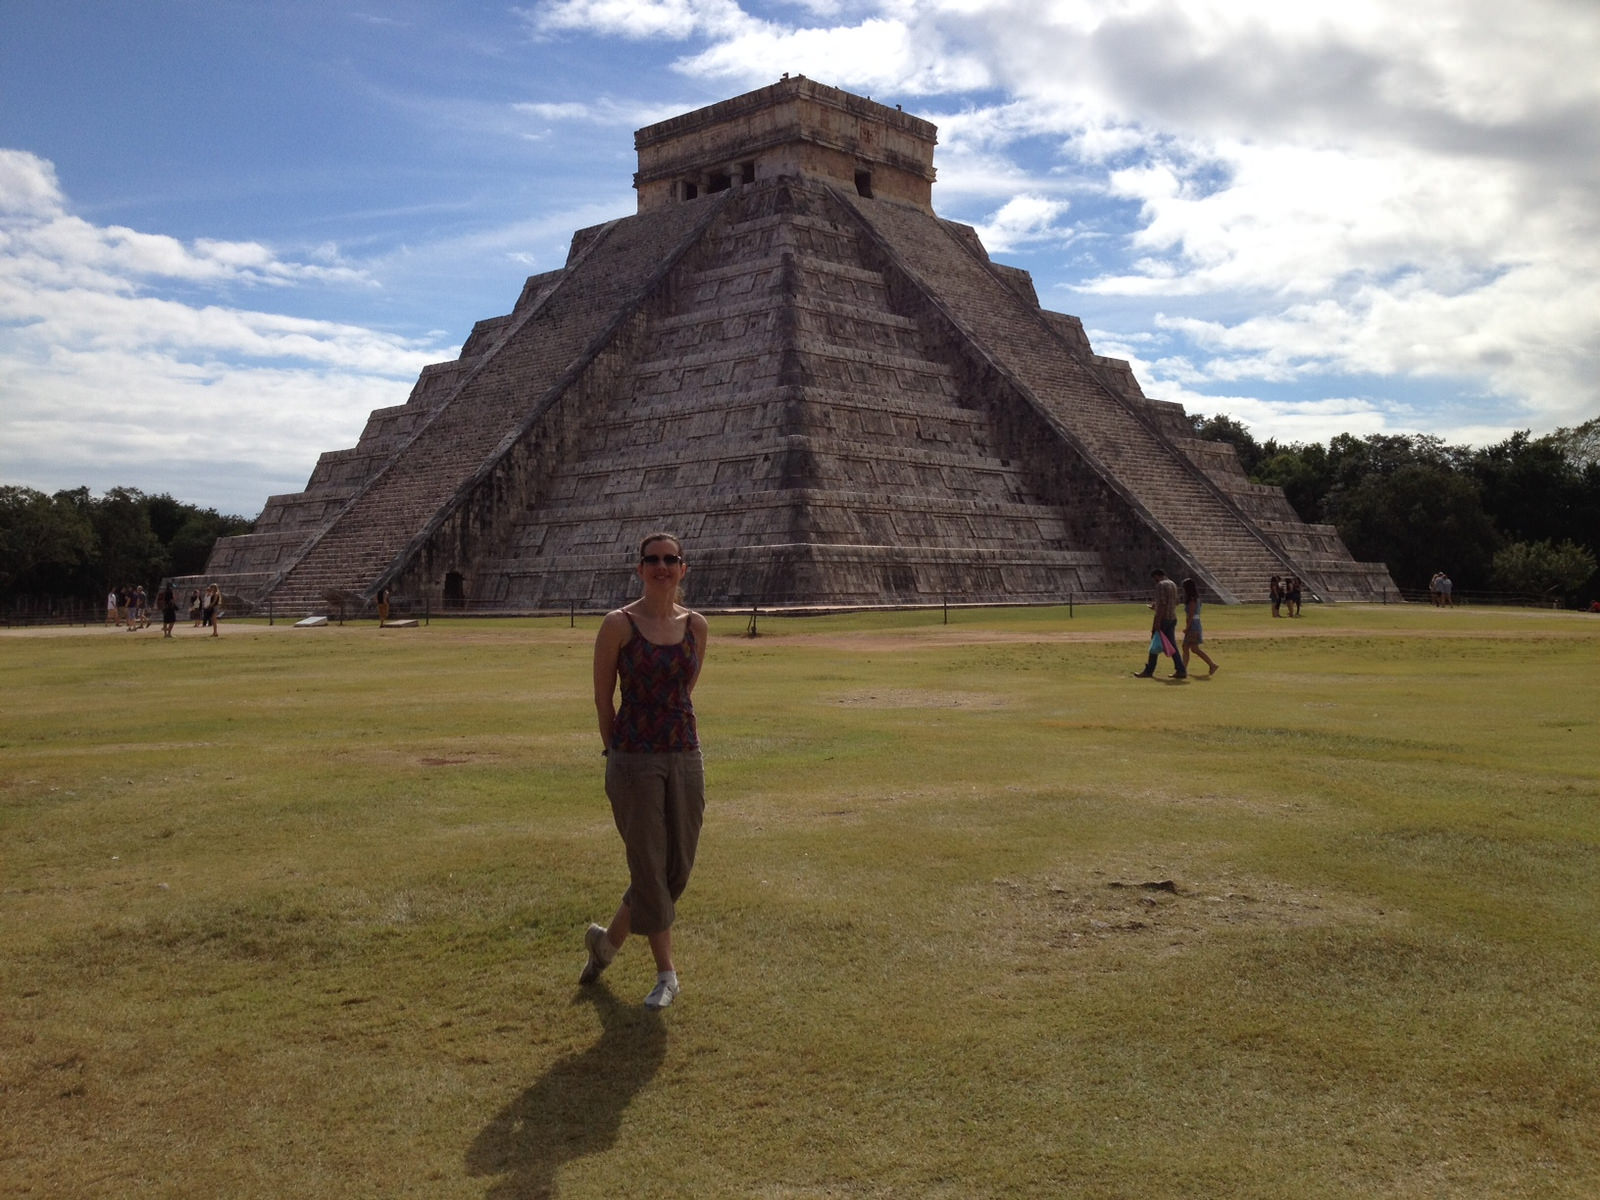 Christina Racek at the iconic Pyramid of Kukulkan